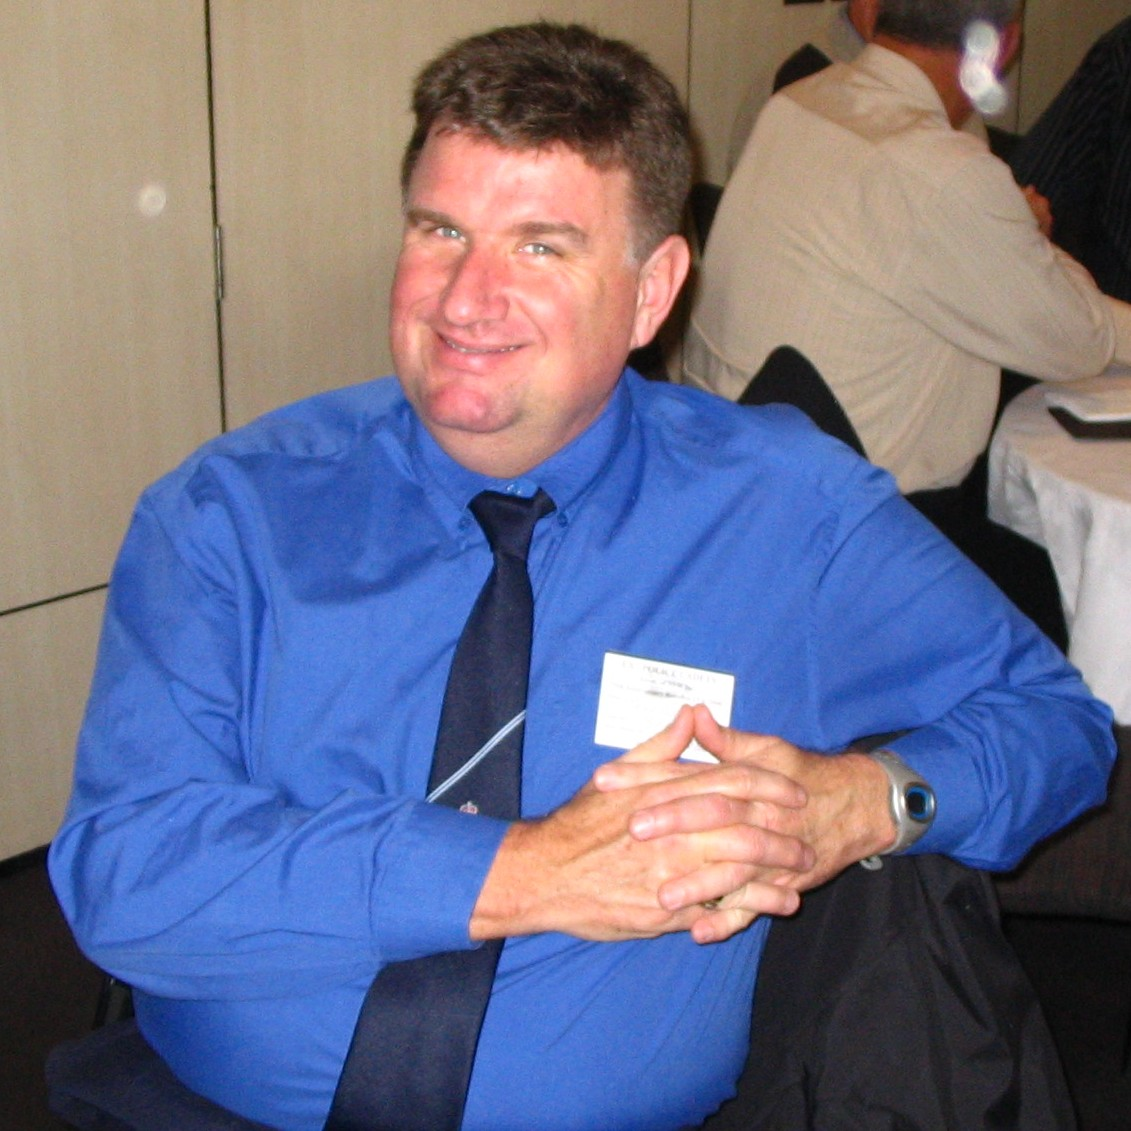 Stephen Thomas CONROY 2 - NSWPF - Died 3 February 2015